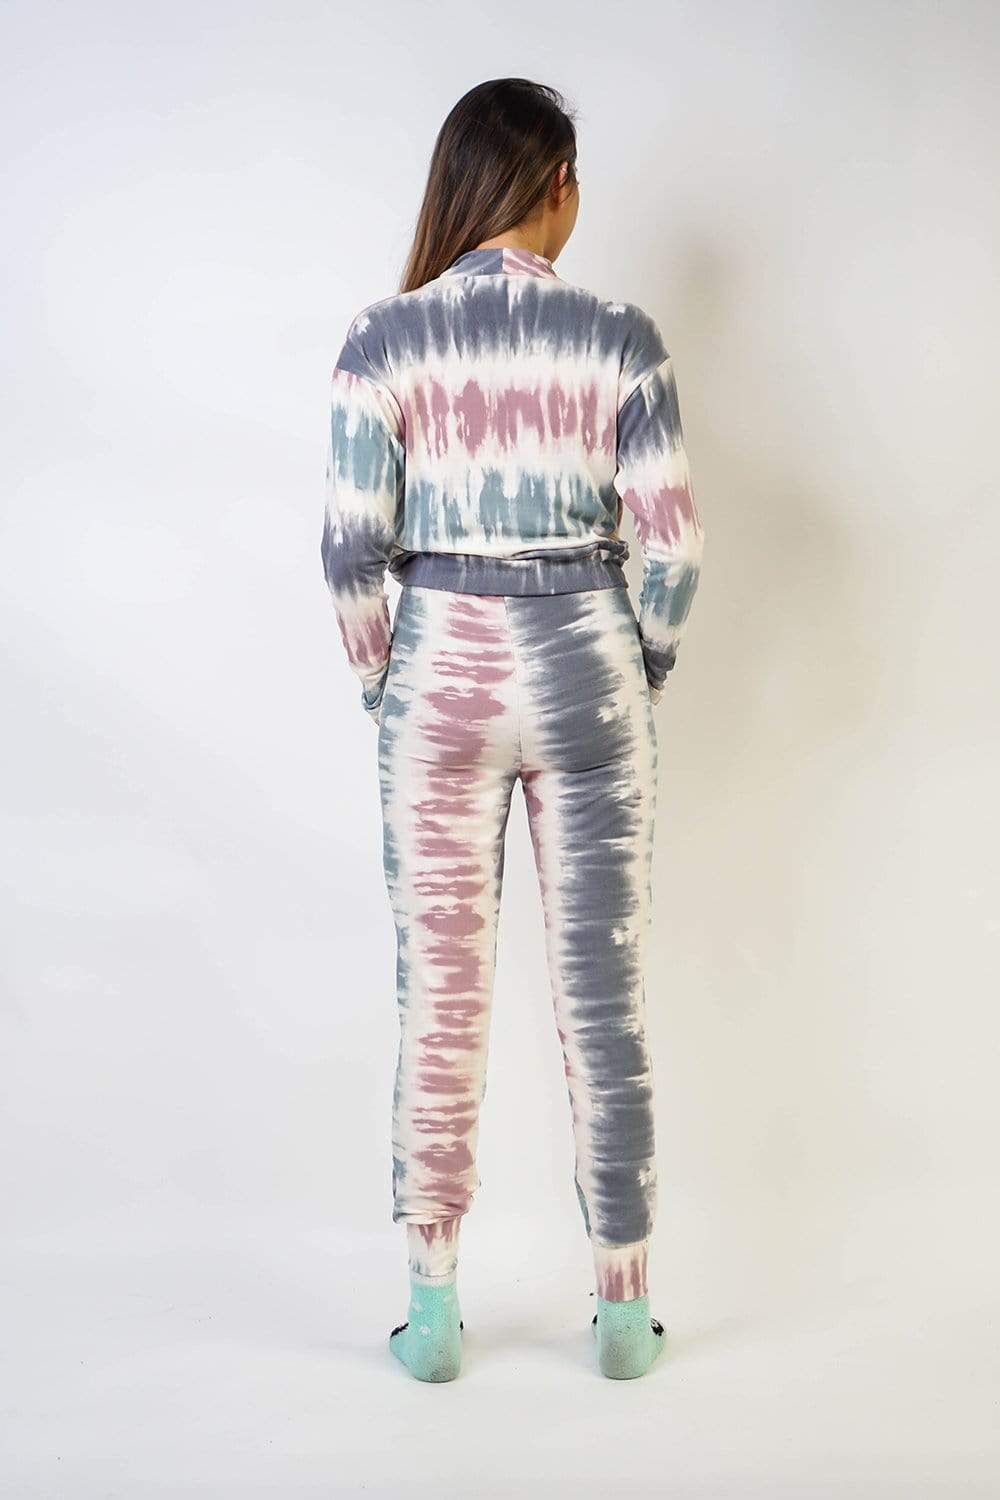 TOP Tie Dye Leisure Set Top - Chloe Dao